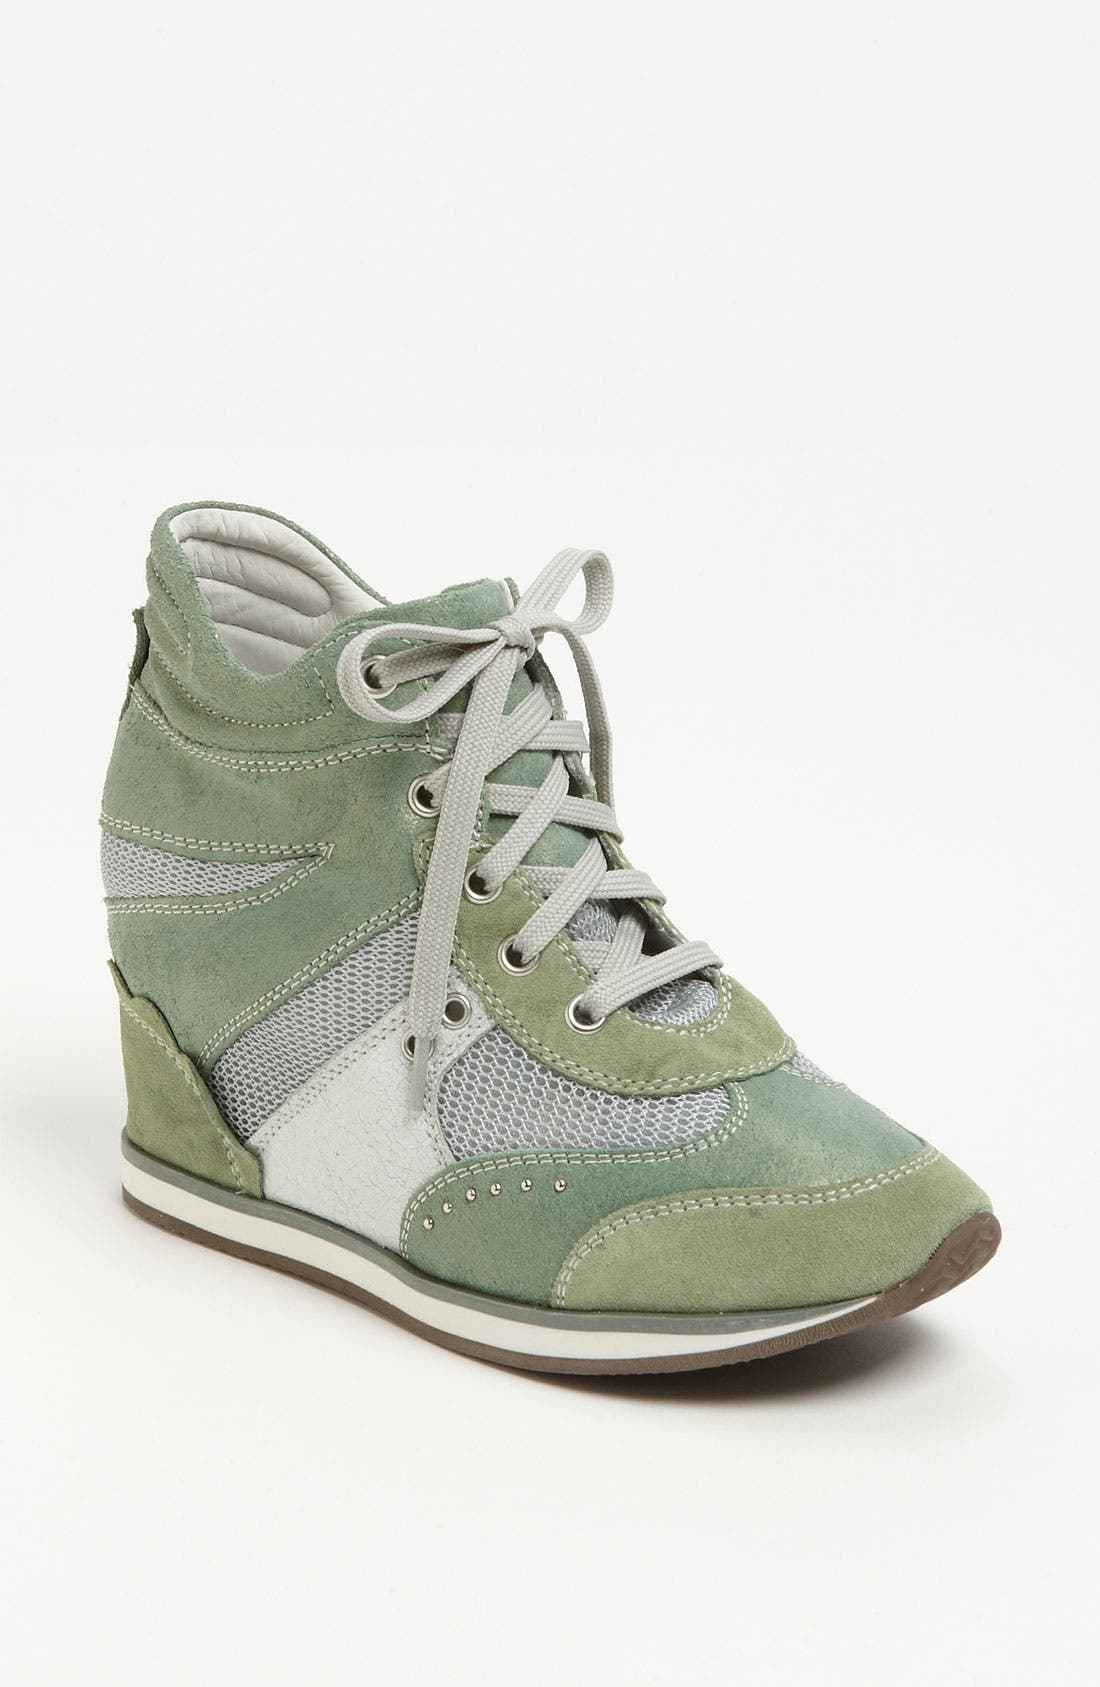 Alternate Image 1 Selected - Geox 'New Ambition' Sneaker